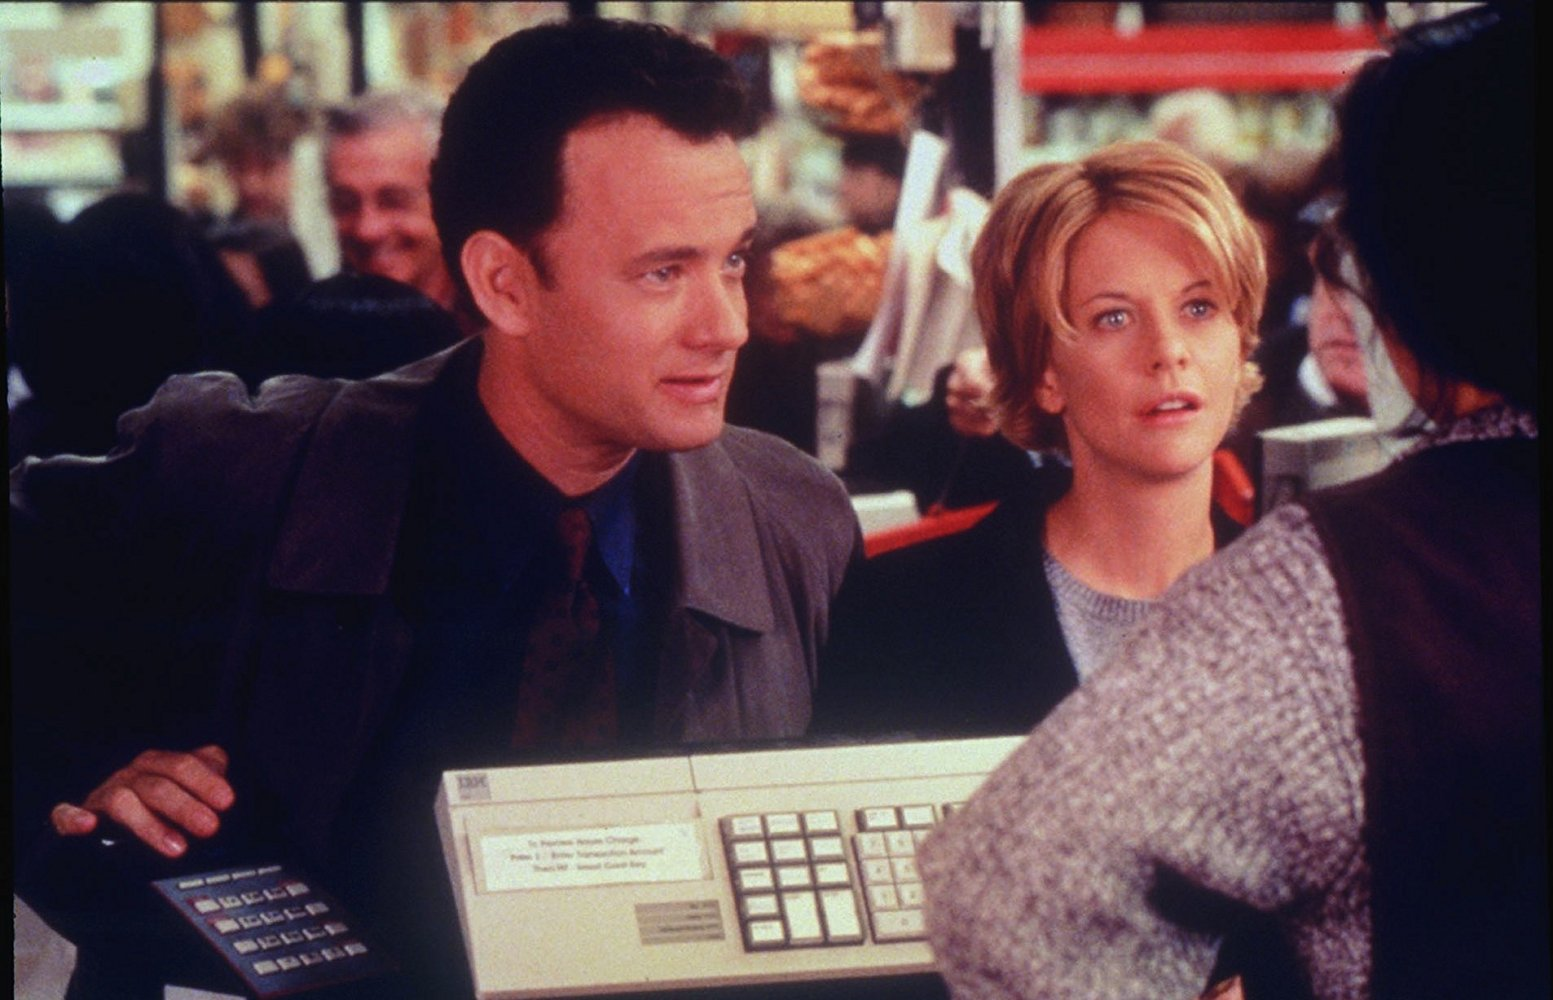 Why You've Got Mail is the perfect rom-com for Valentine's Day